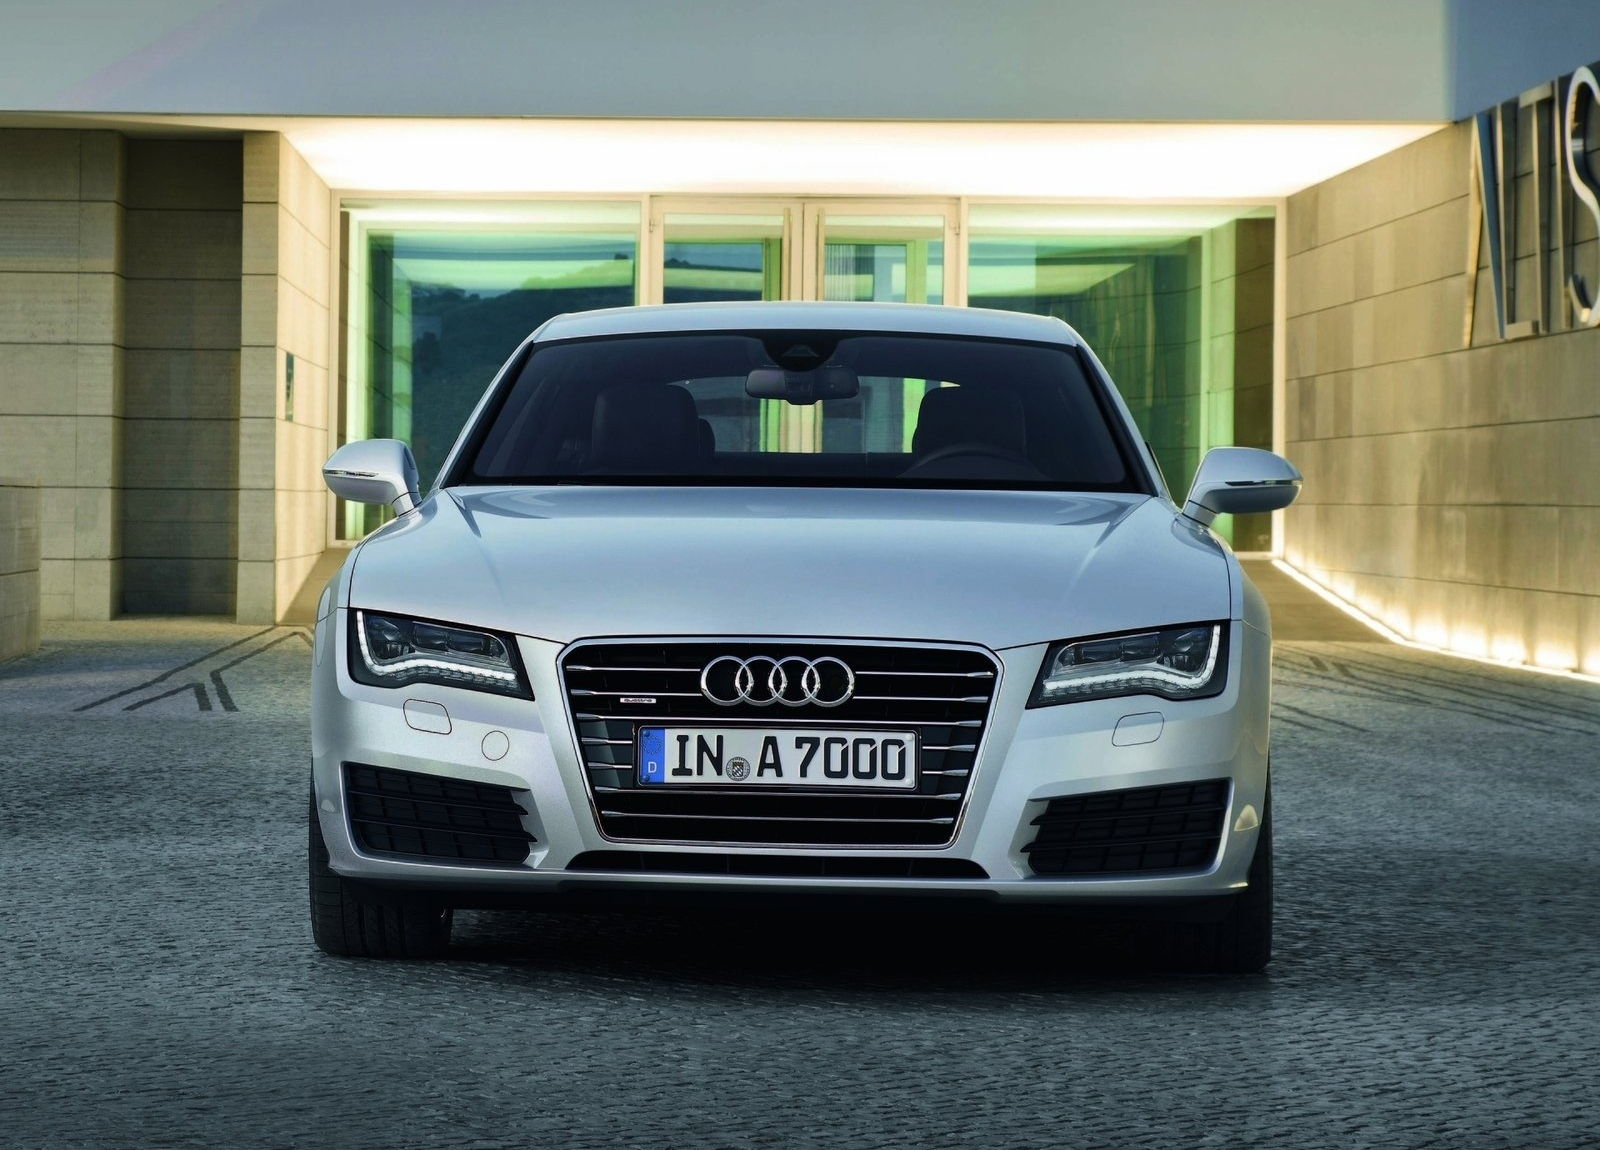 Audi A7 Sportback Hd Wallpapers The World Of Audi